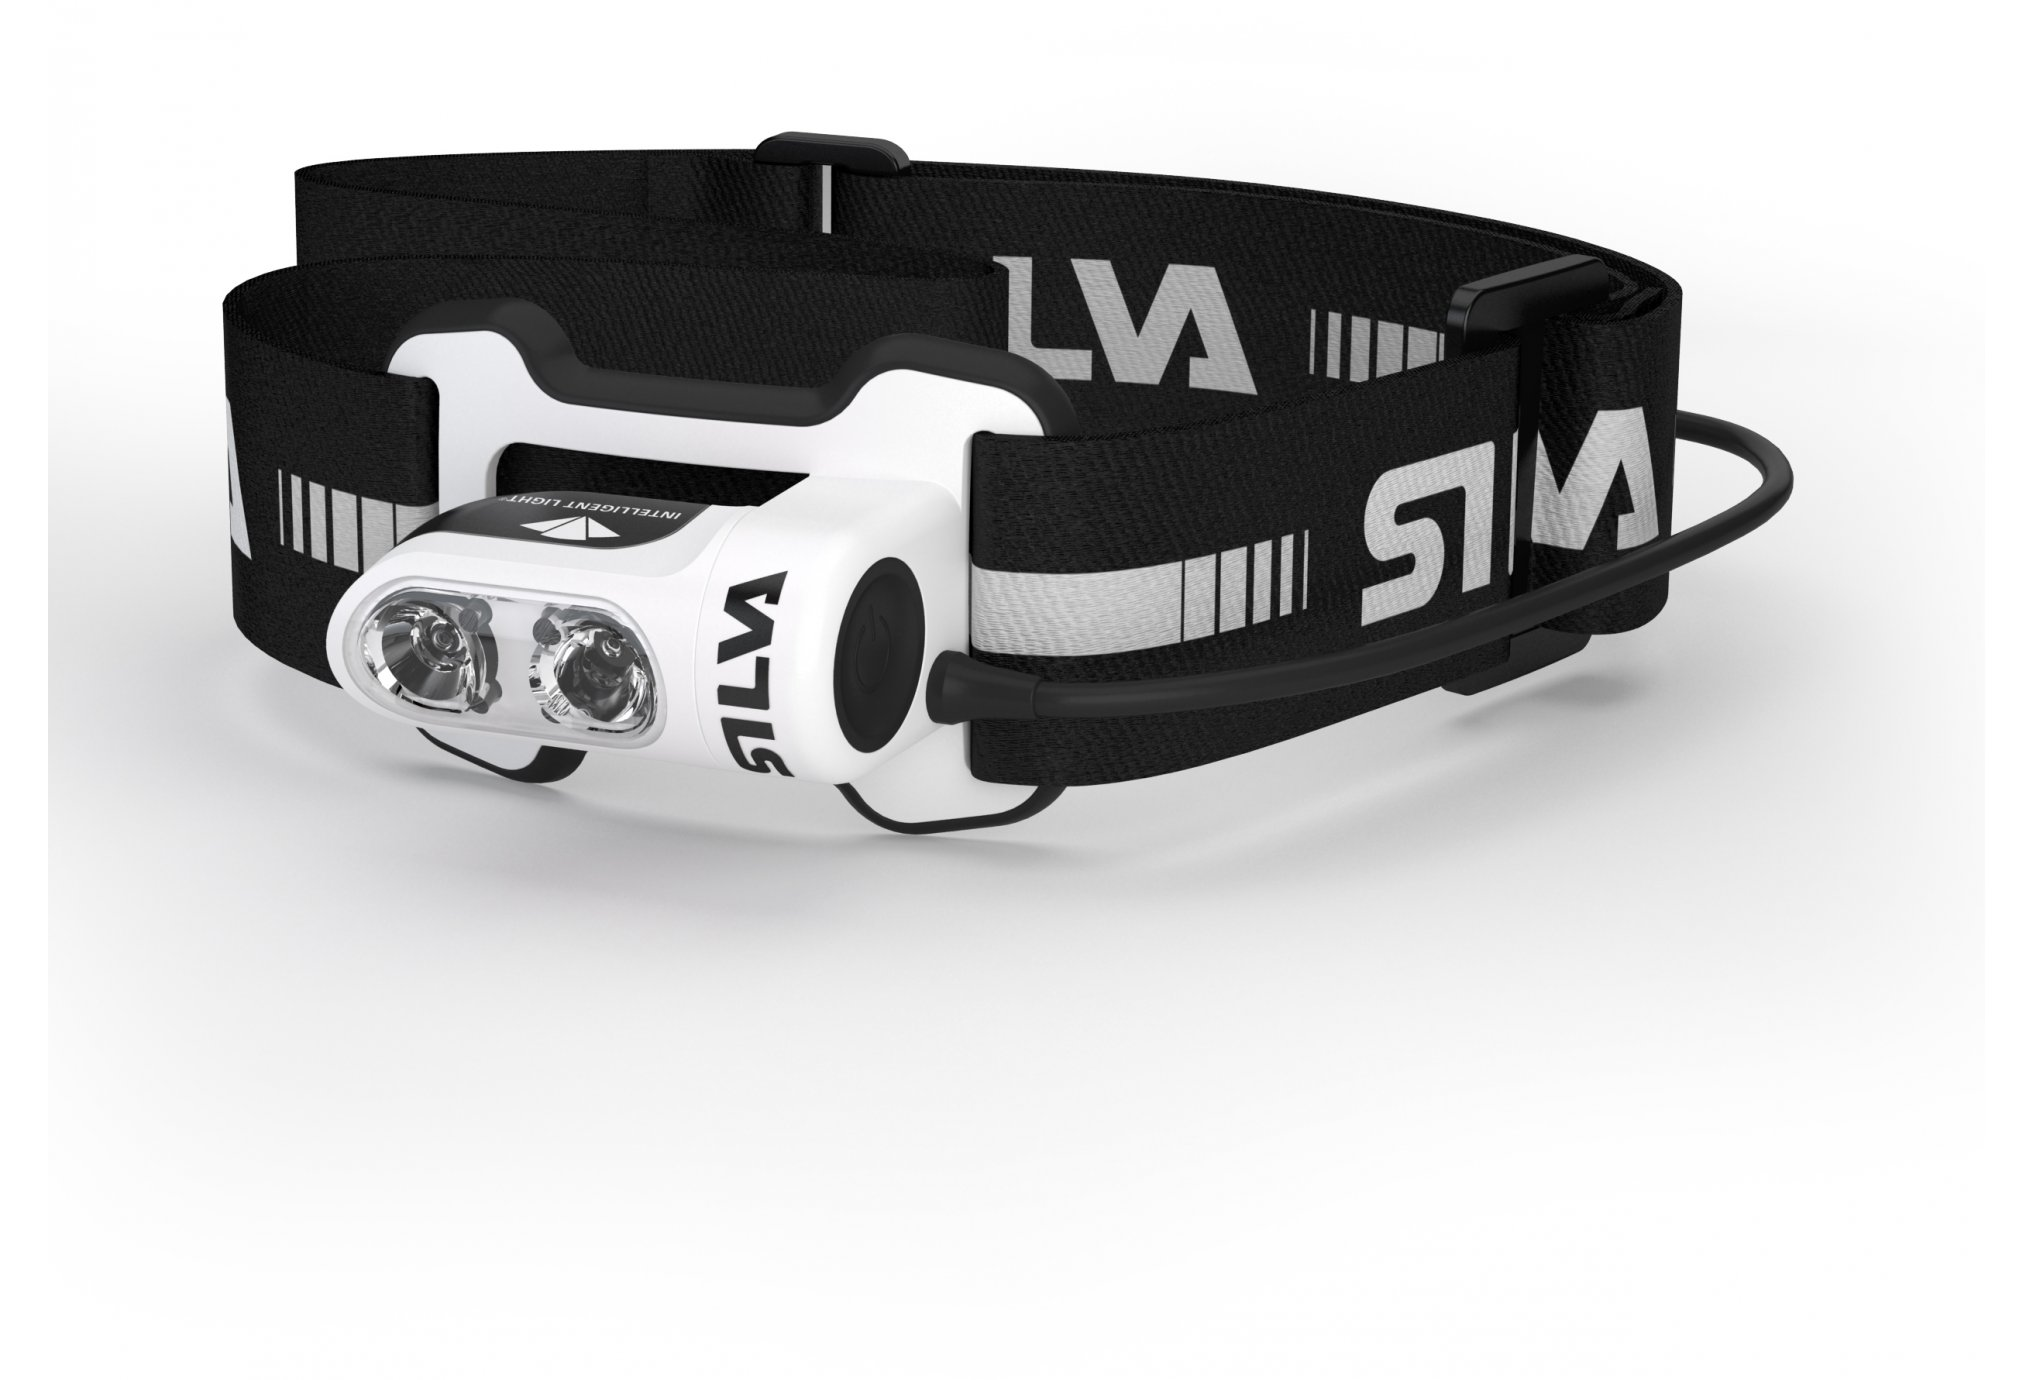 Silva Trail Runner 4 Ultra Lampe frontale / éclairage